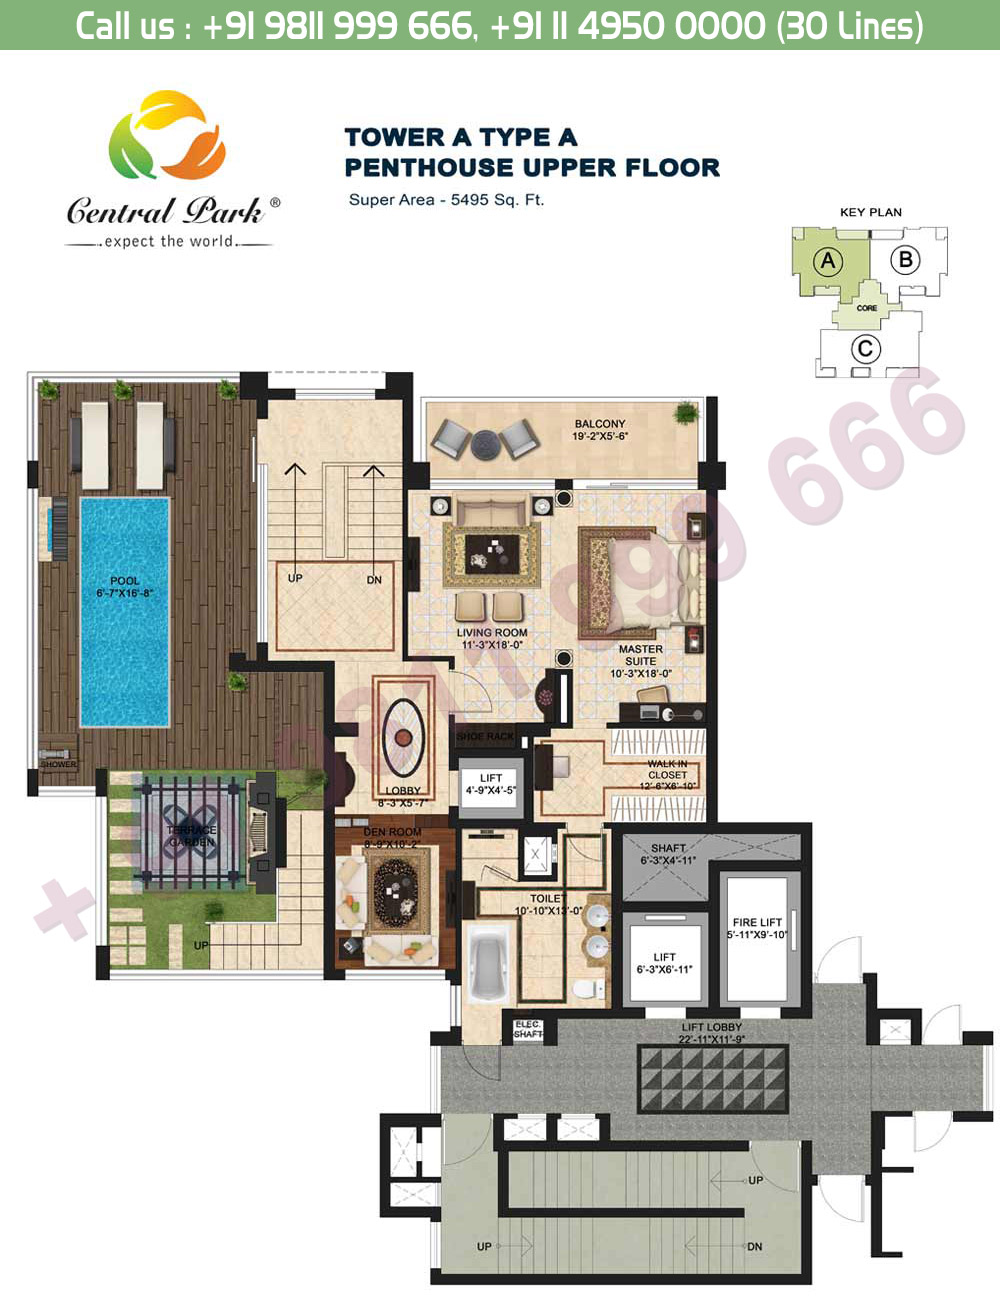 Tower - A, Type - A, Penthouse Upper Floor:  5495 Sq. Ft